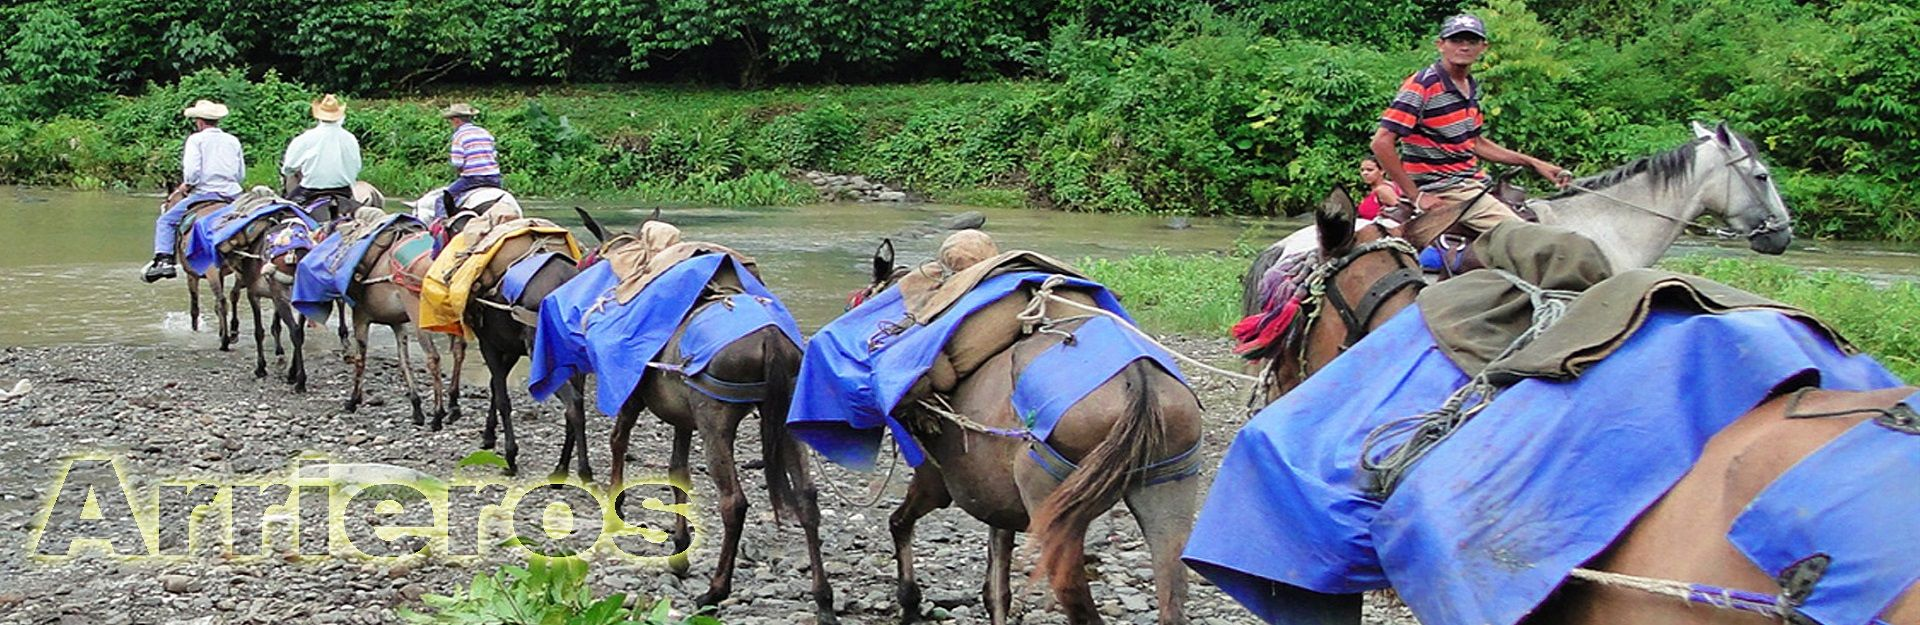 National Event Of Mule Drivers, Buey Arriba, Granma, Cuba Travel